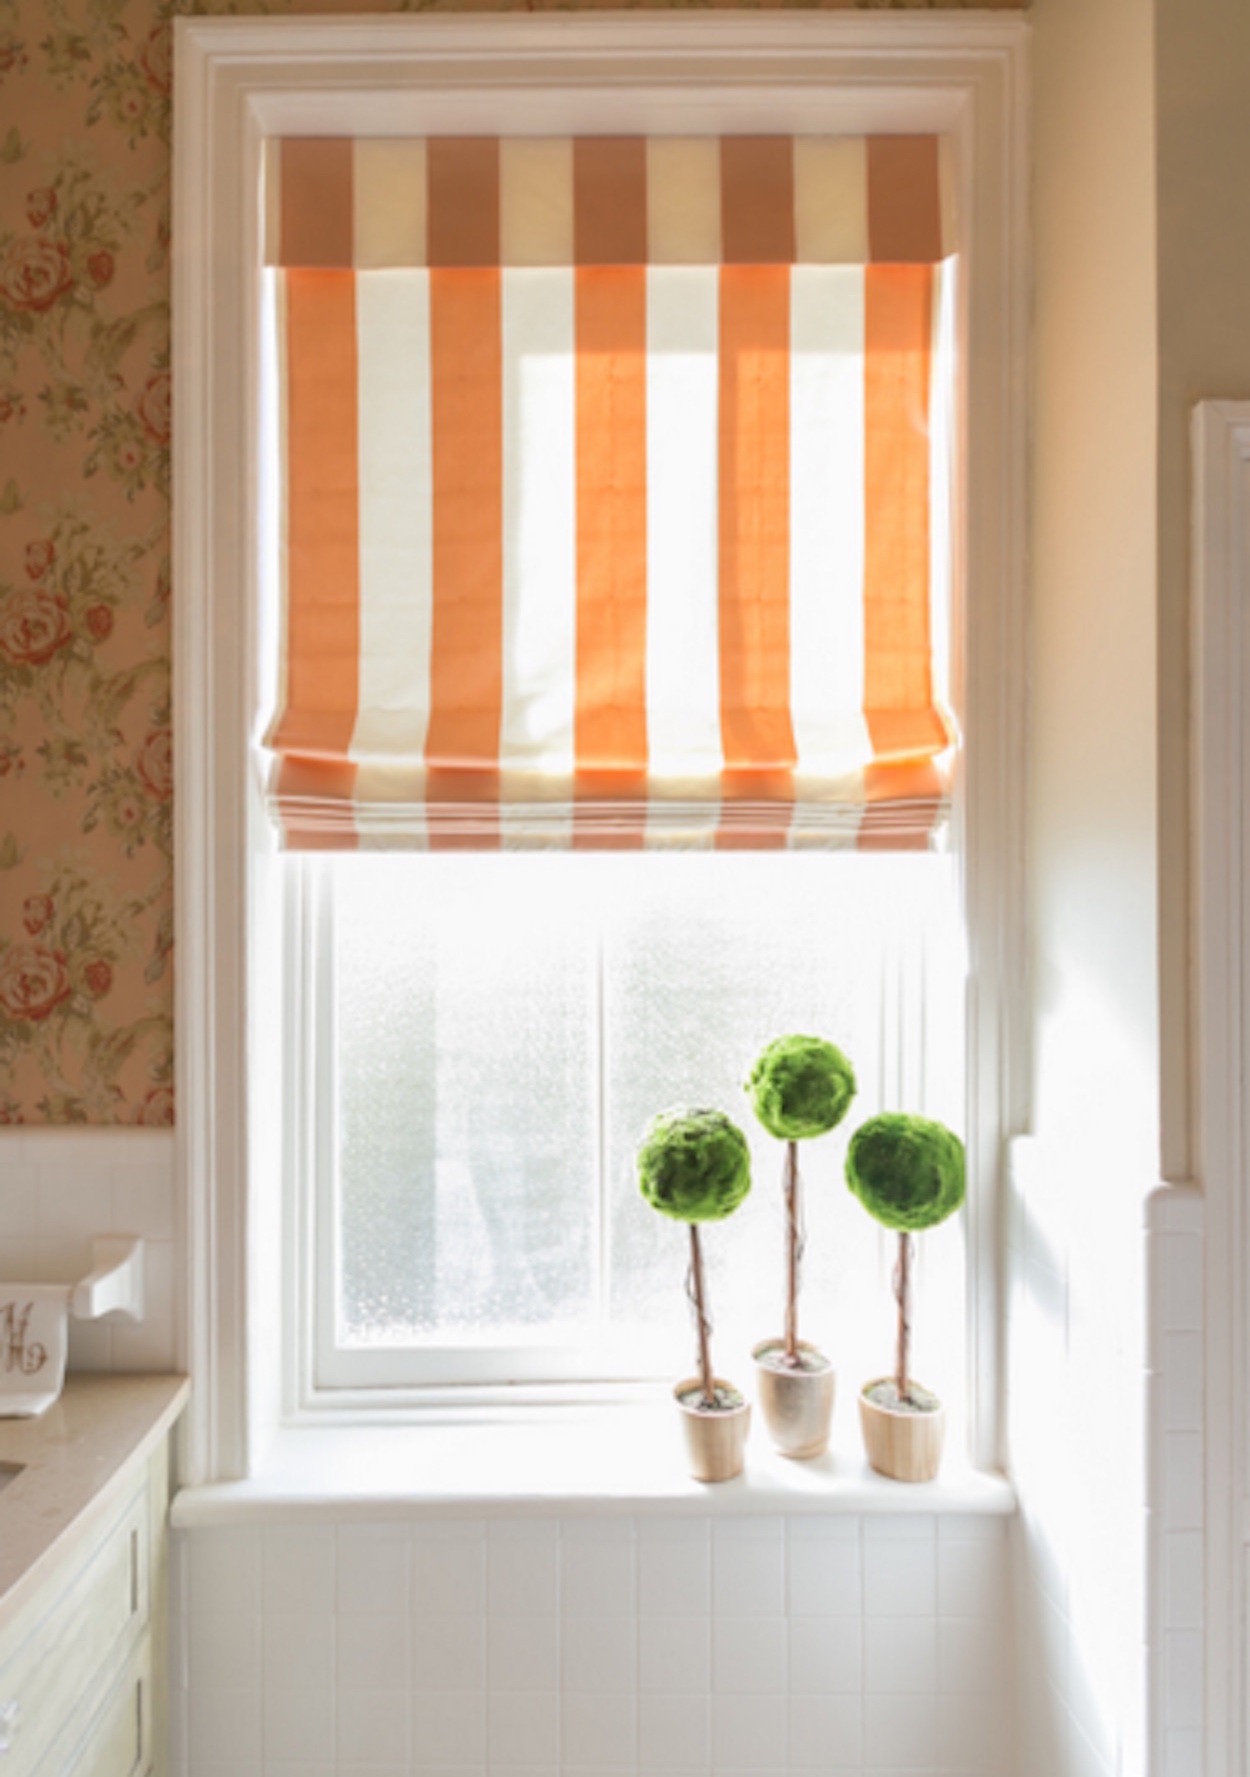 Fascinating 80 bathroom window dressing decorating for Blinds bathroom window